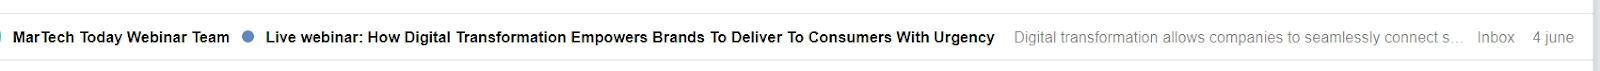 An informative subject line